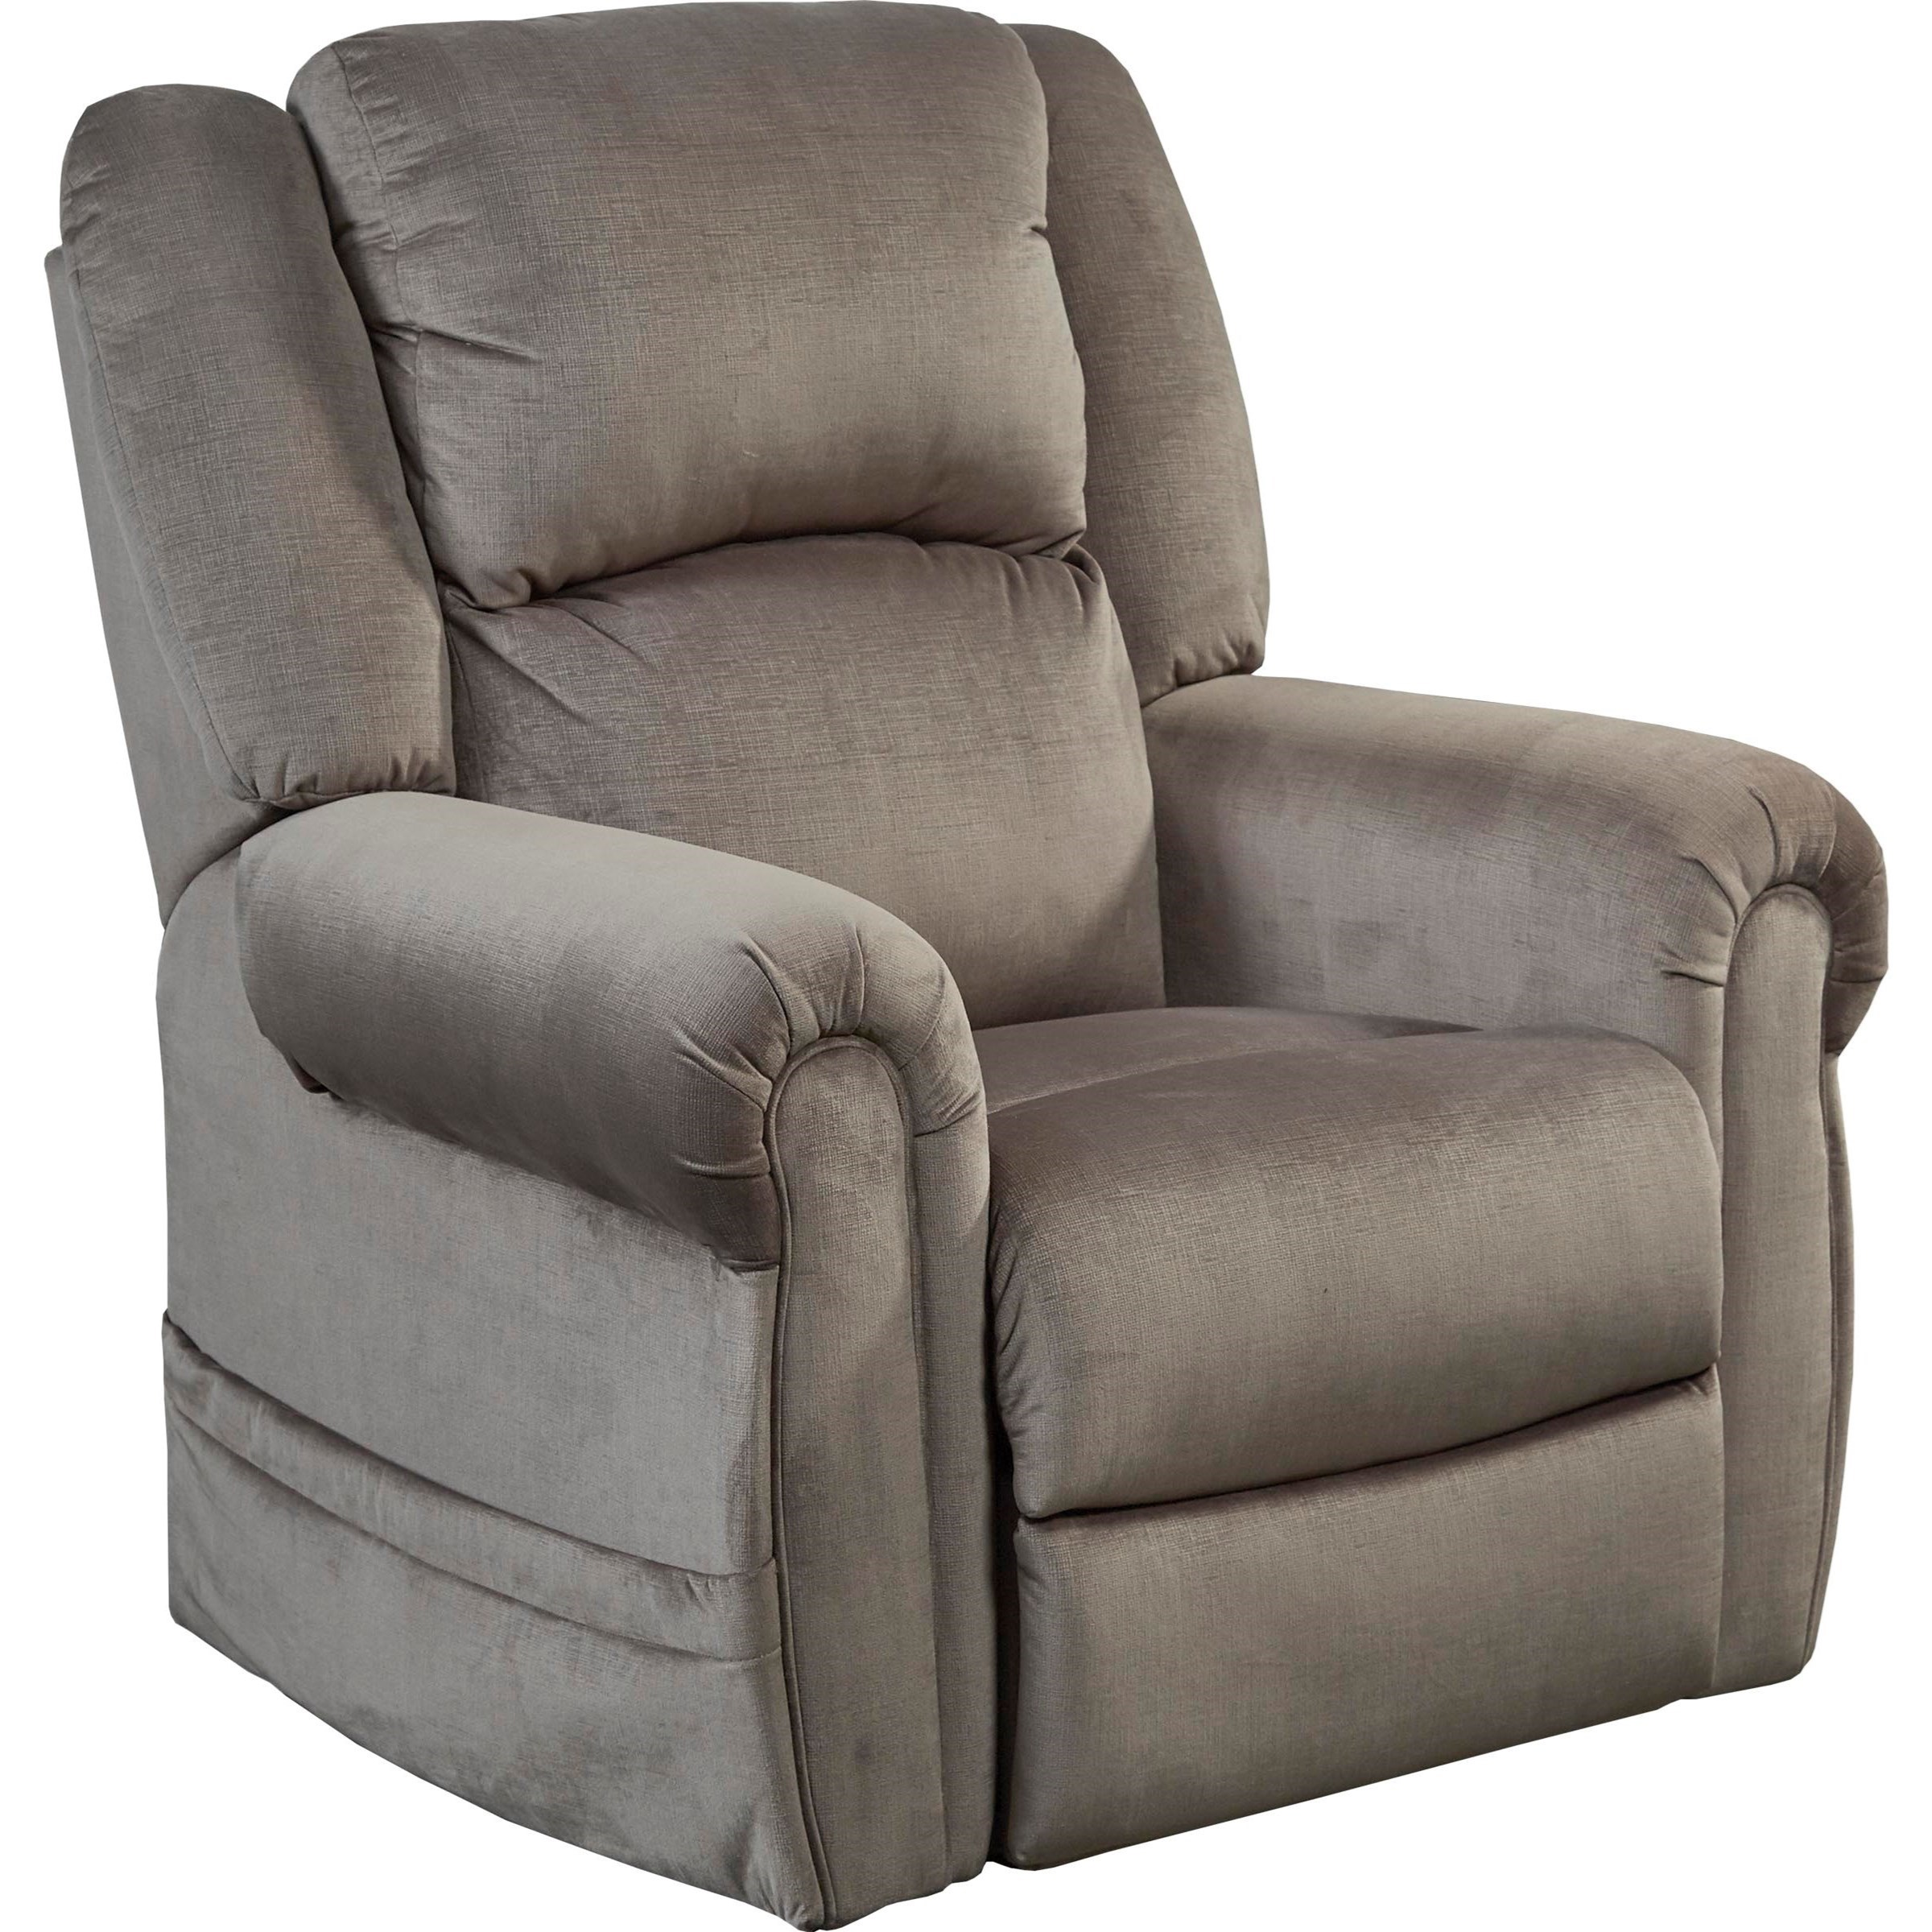 Catnapper Motion Chairs and Recliners Spencer Power Lift Recliner